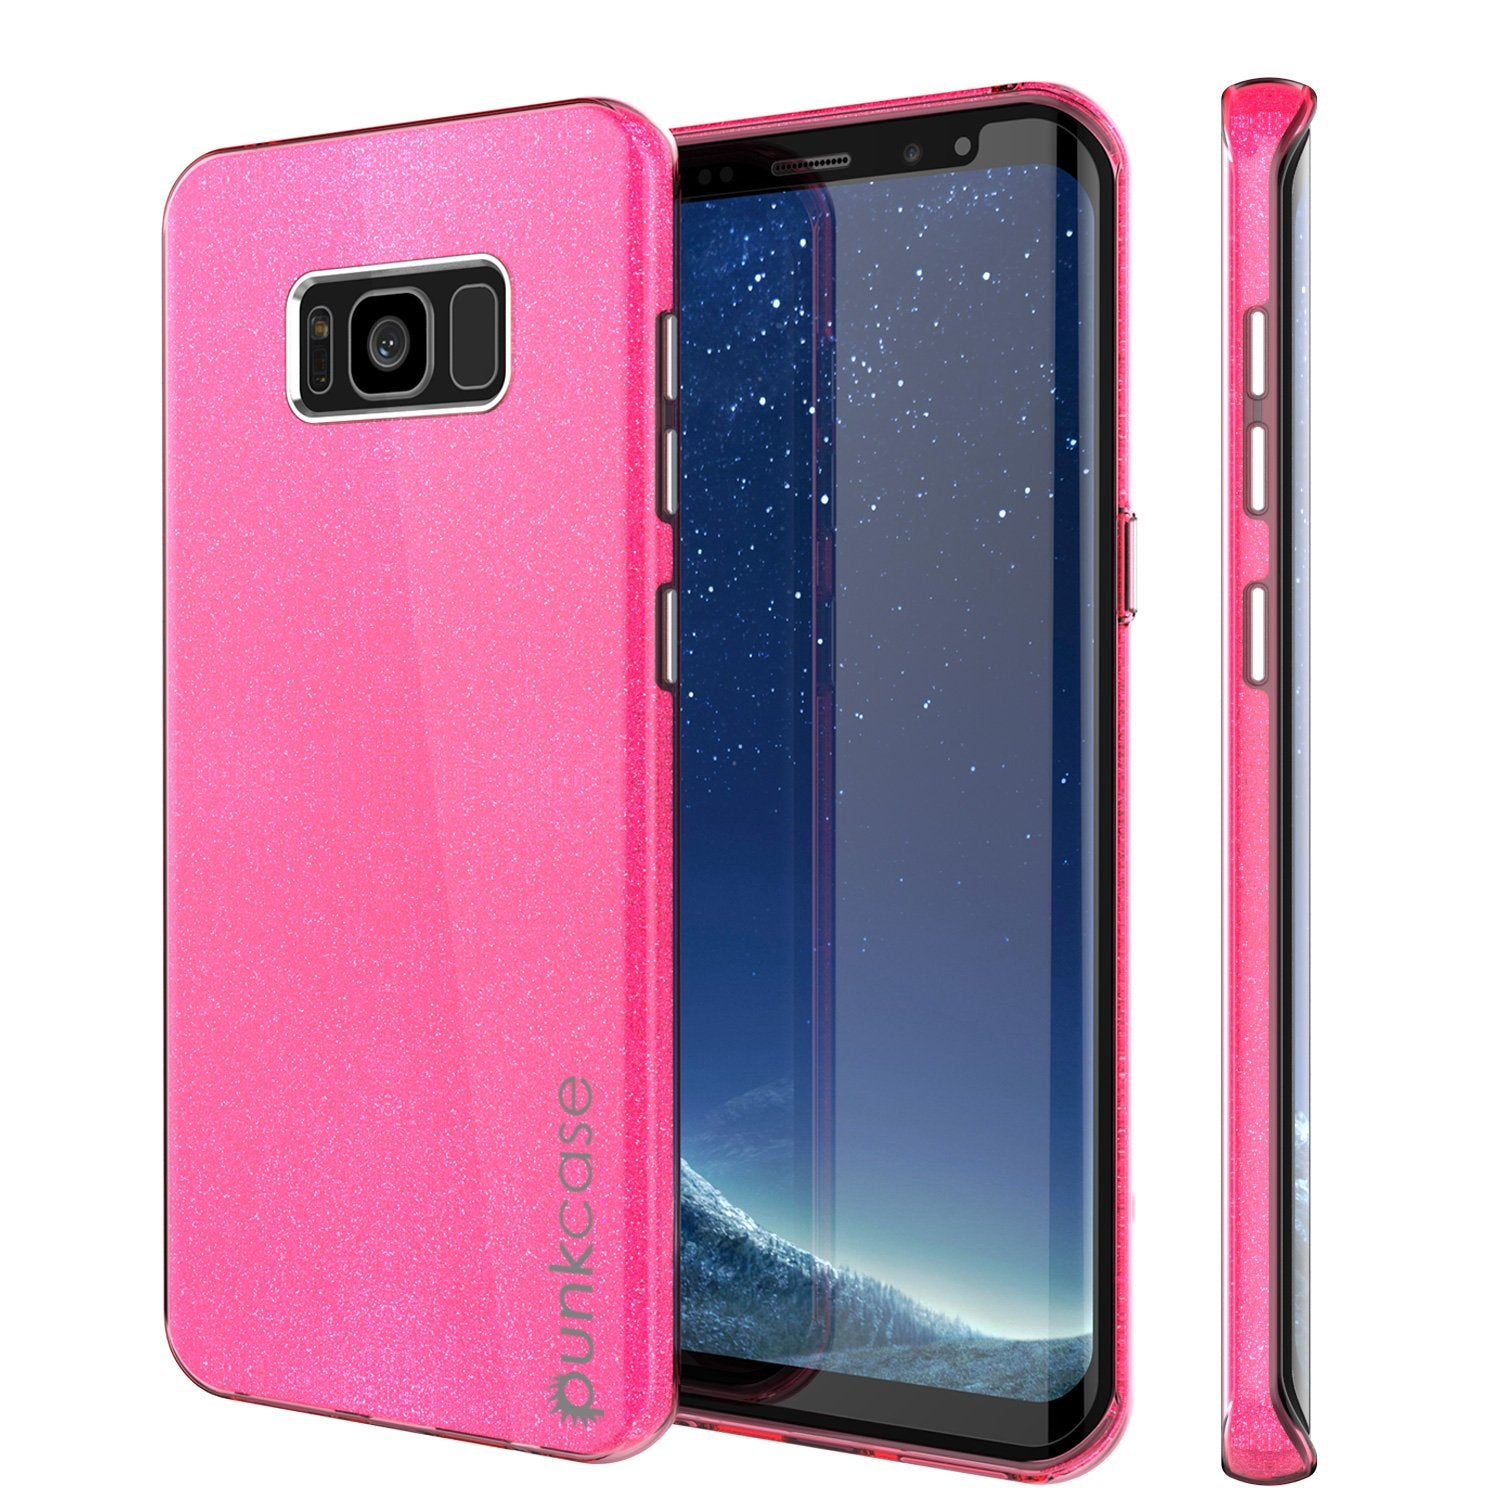 Galaxy S8 Plus Case, Punkcase Galactic 2.0 Series Ultra Slim Protective Armor TPU Cover [Pink]